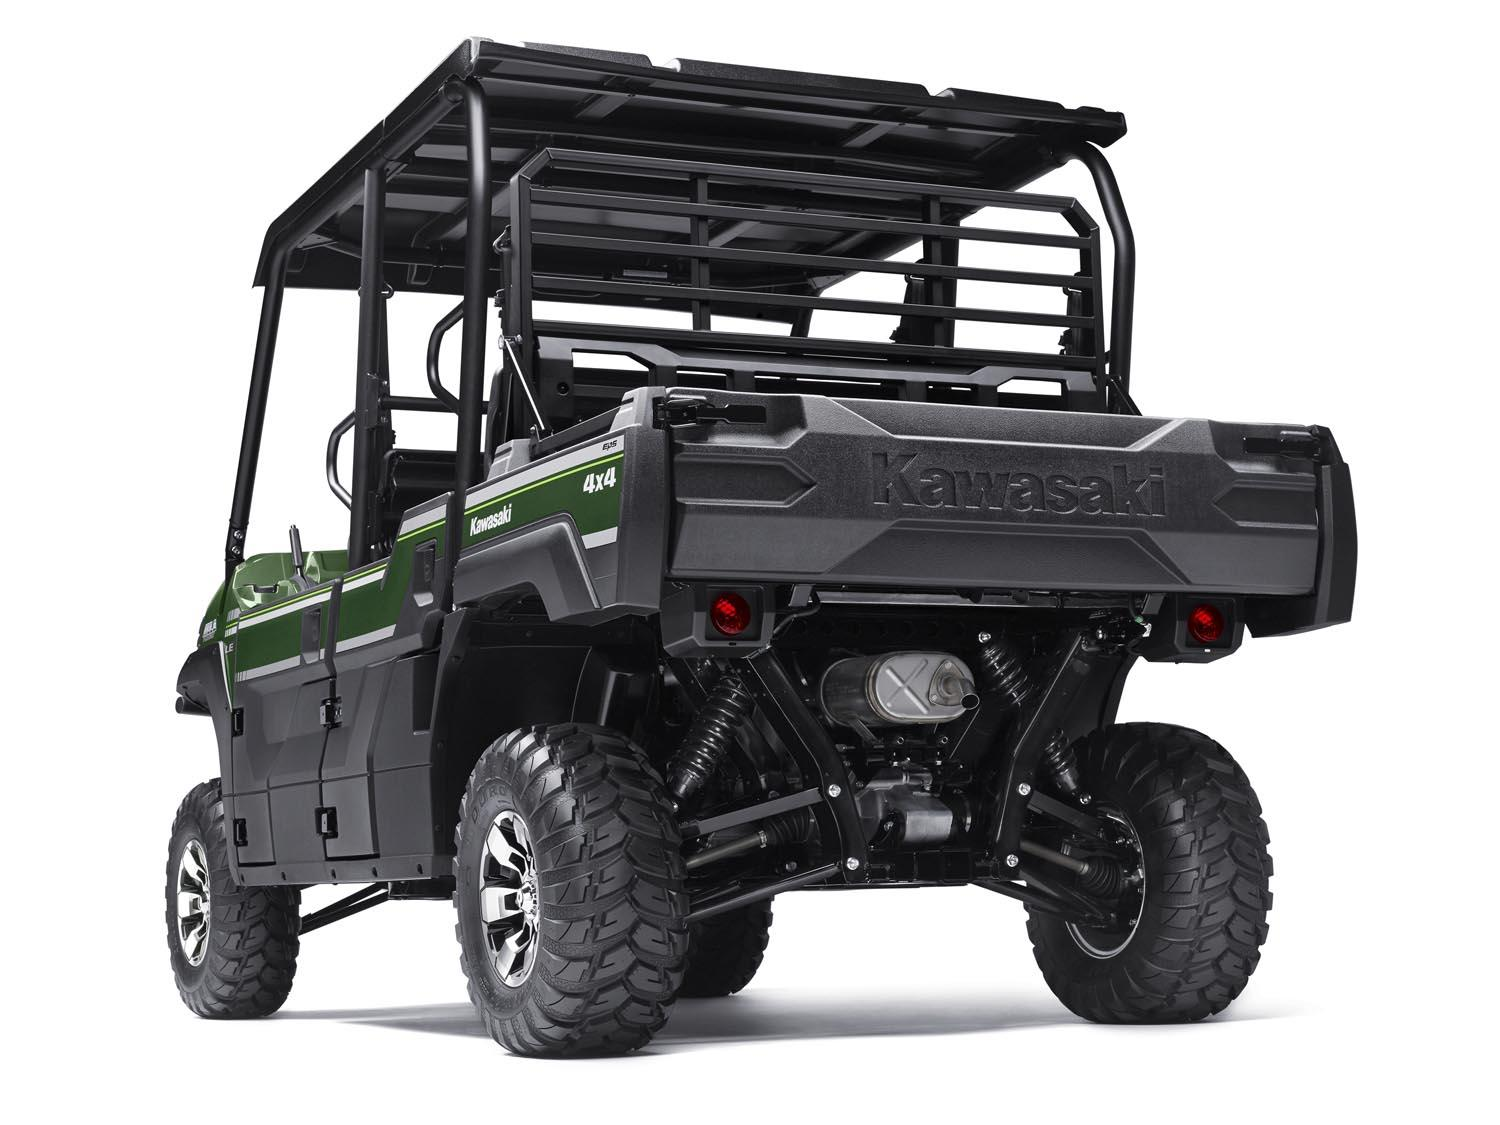 2015 Kawasaki Mule PRO-FXT™ EPS LE in North Reading, Massachusetts - Photo 12